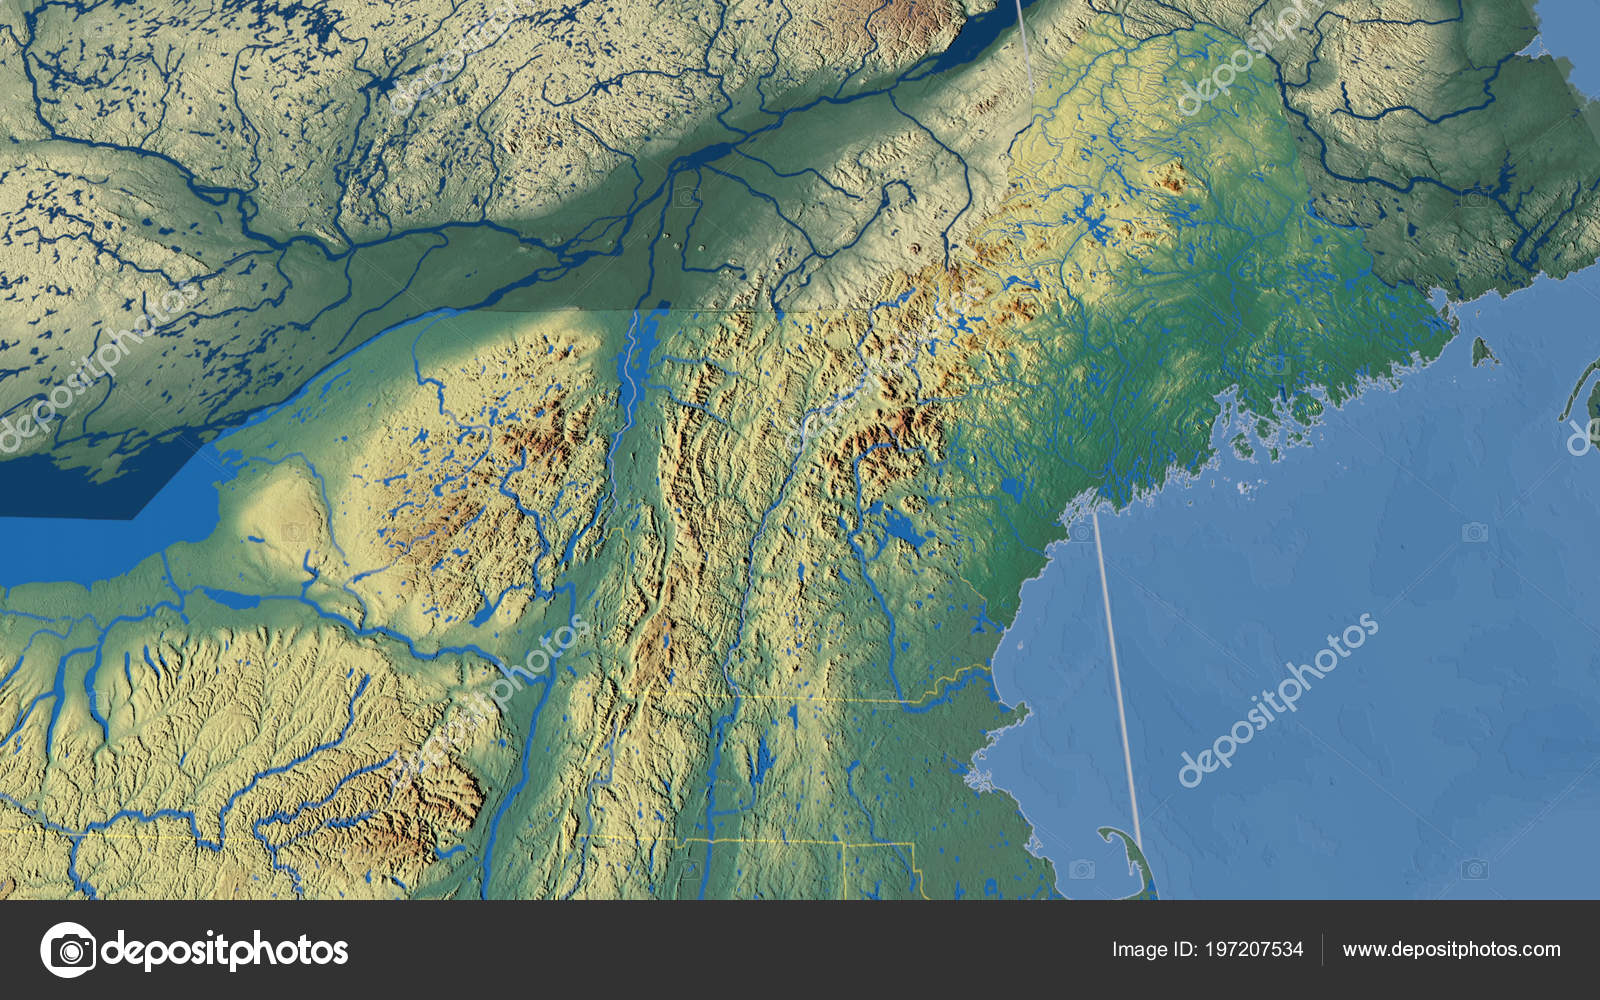 Relief Map Of United States.Maine Region United States Outlined Topographic Relief Map Stock